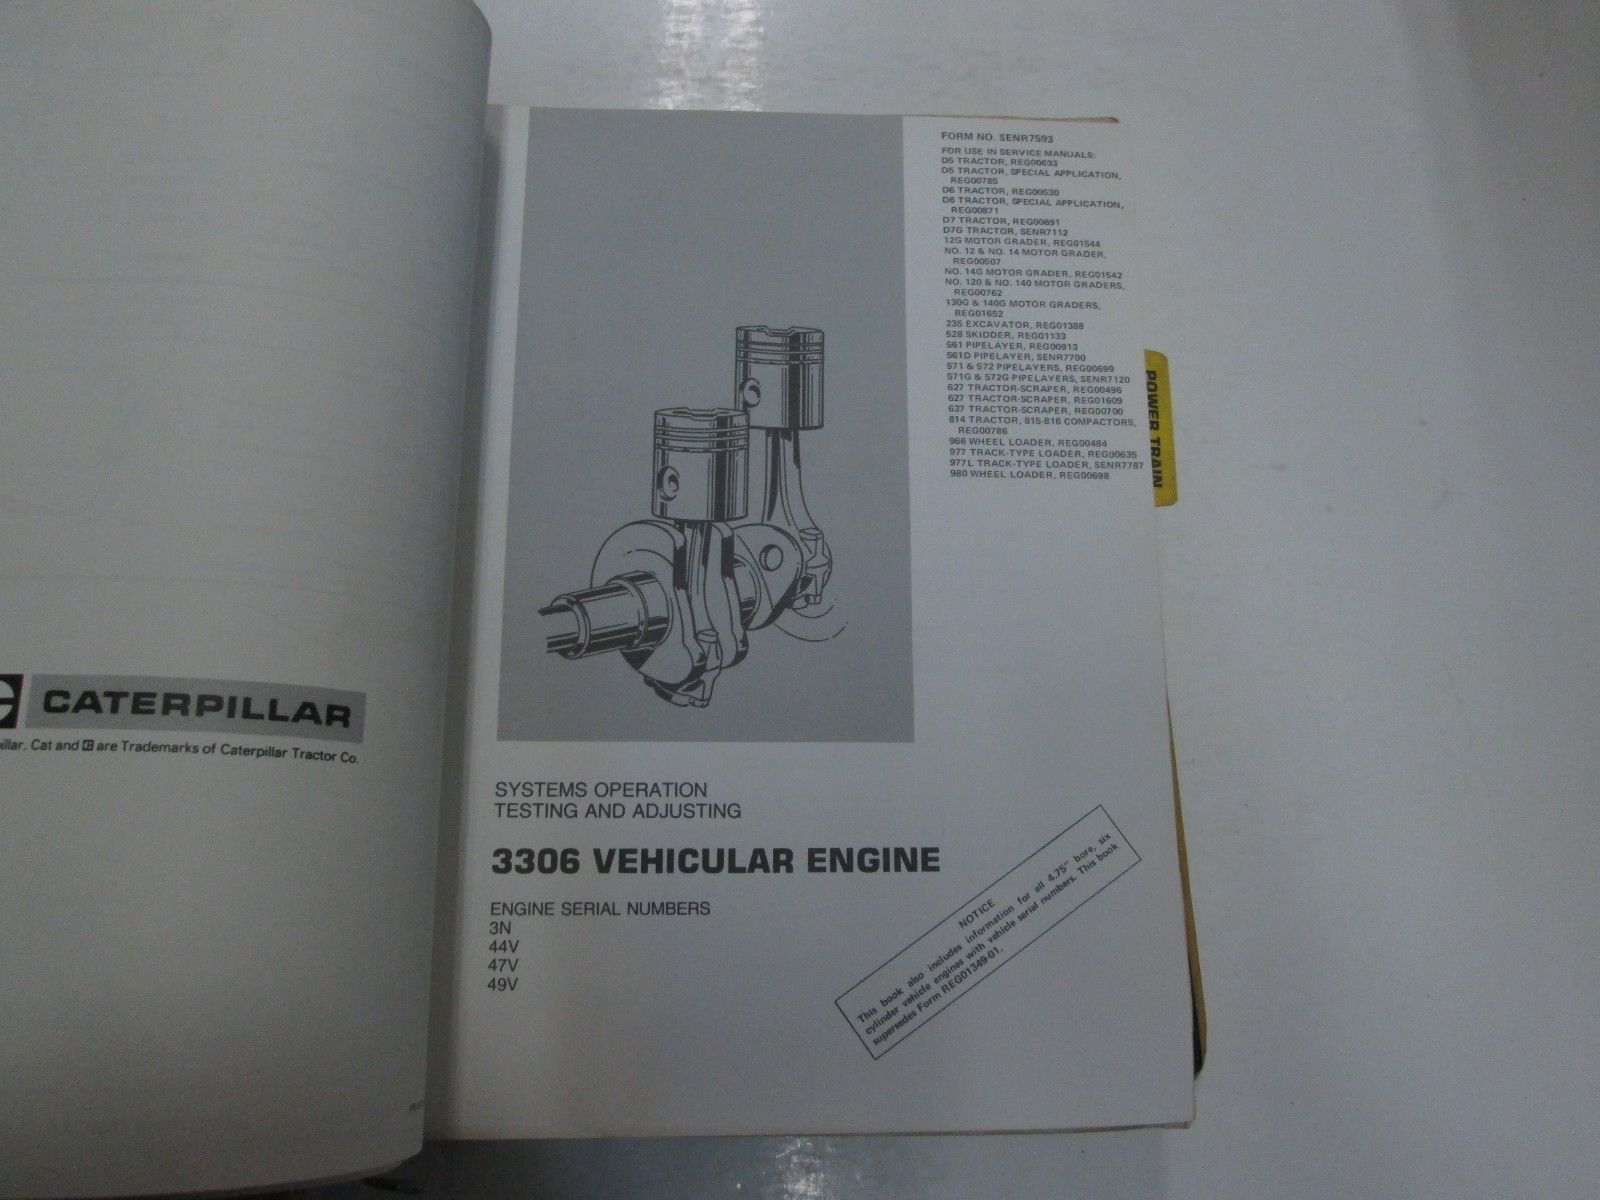 Caterpillar 3304 3306 Engines Supplement and 50 similar items